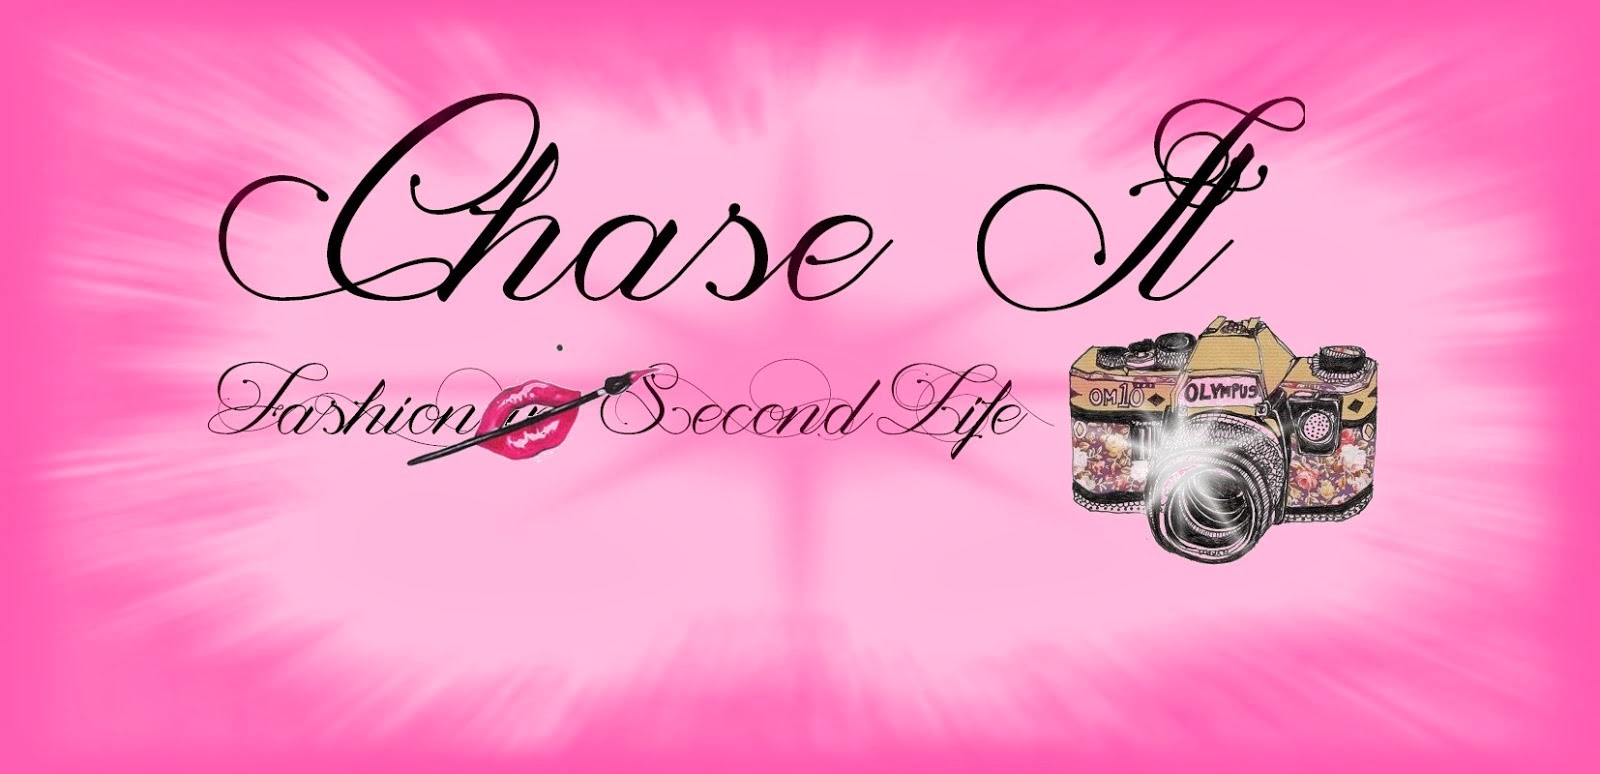 Chase It is on FLICKR!